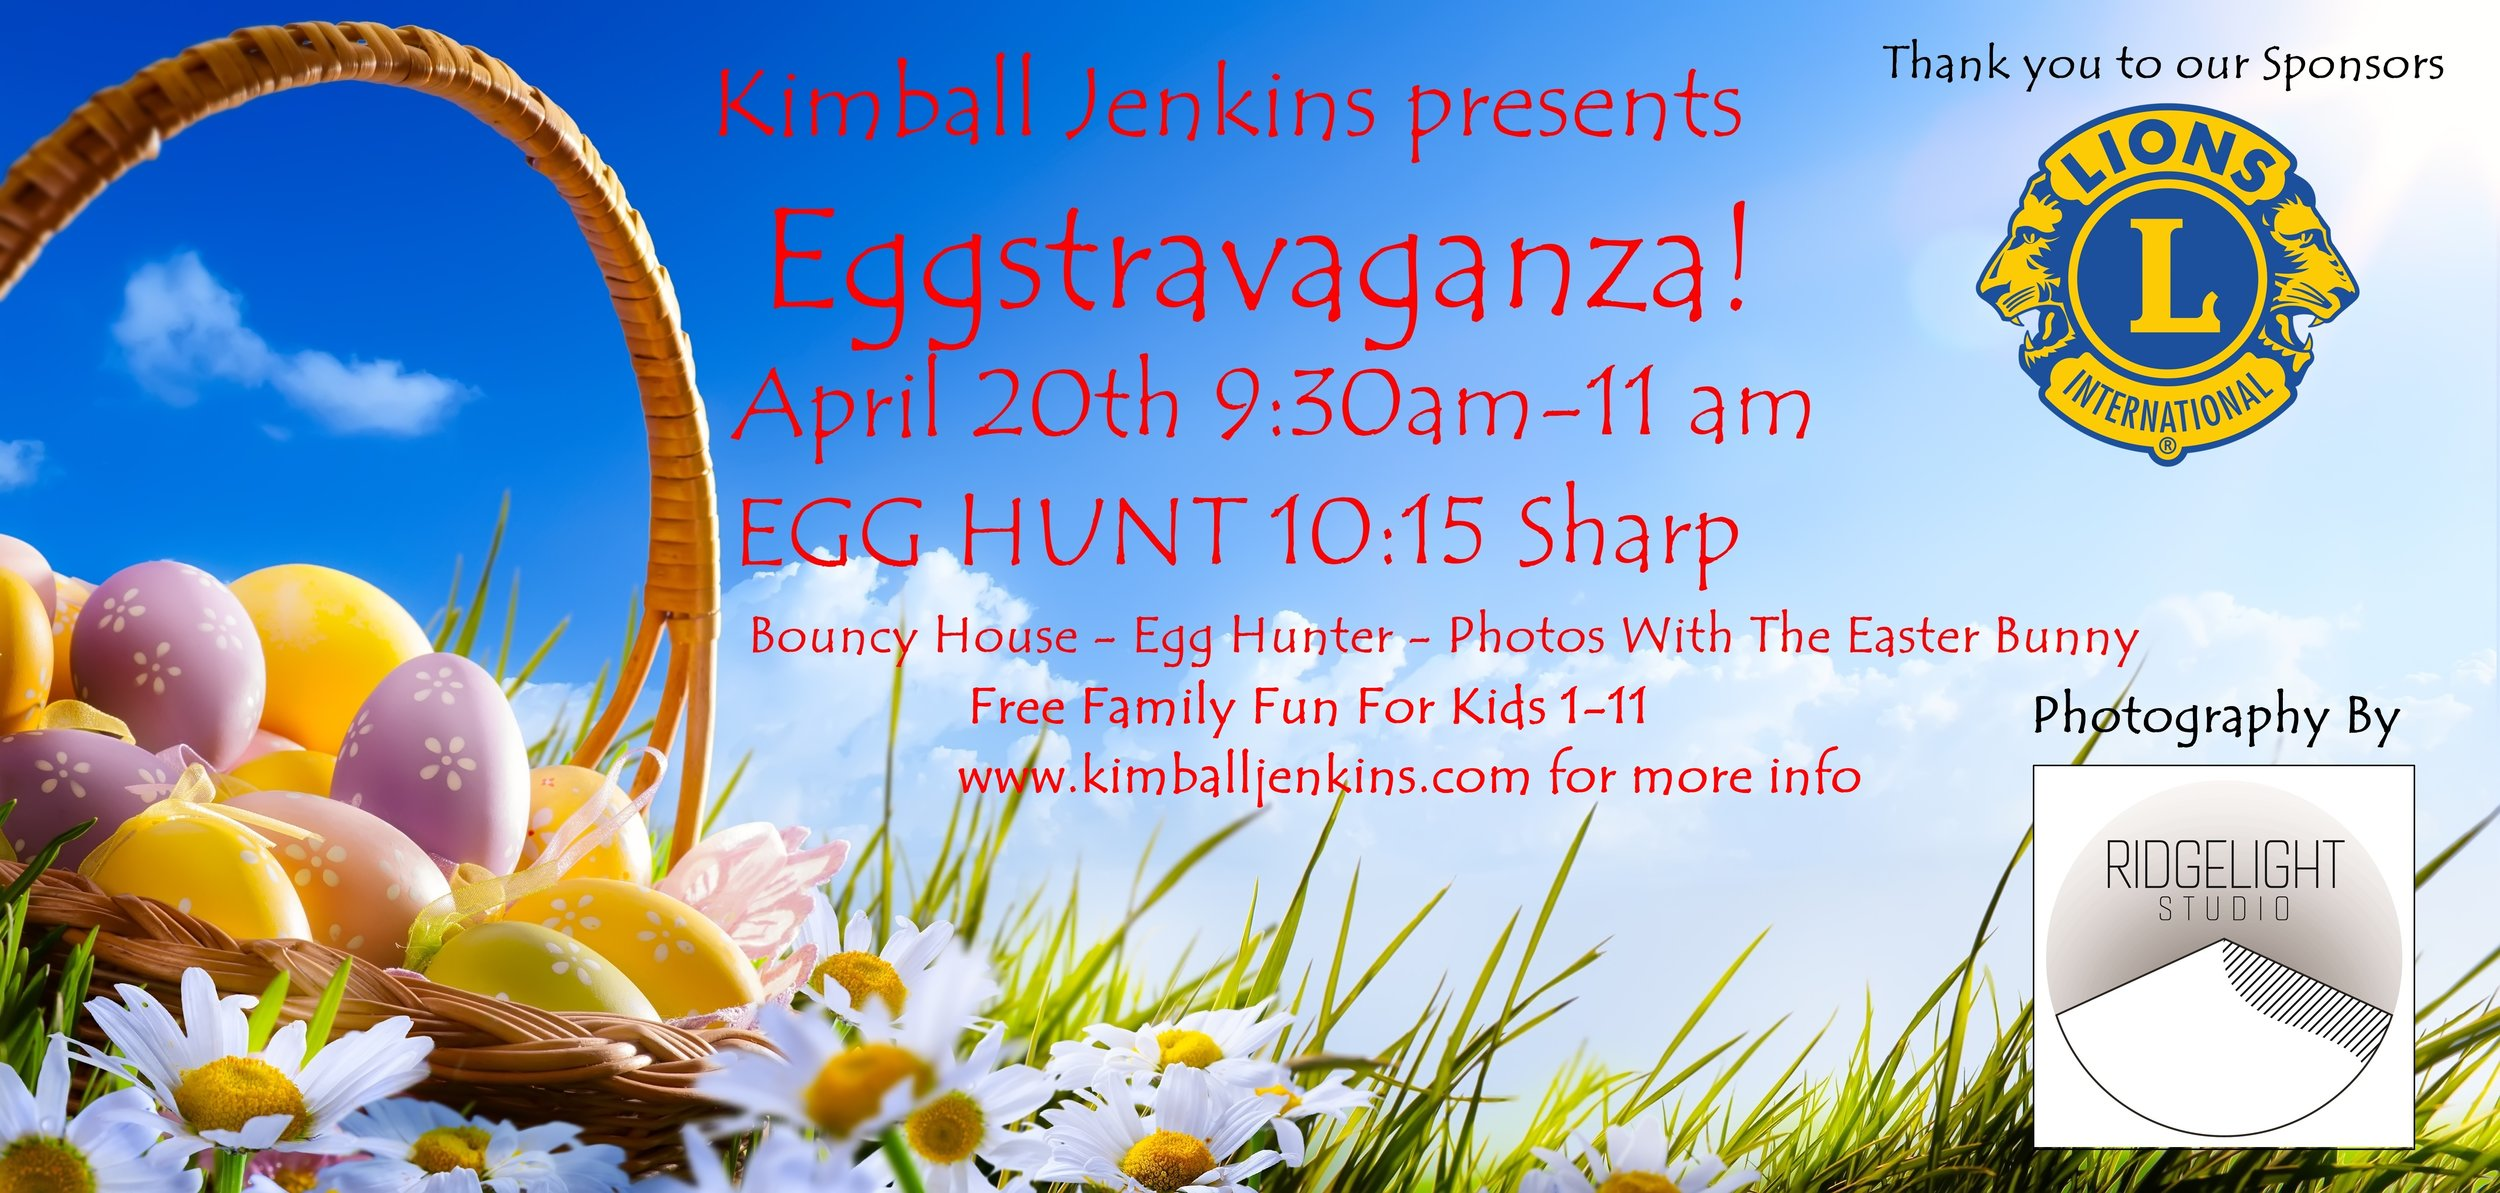 Photos With The Easter Bunny  Bouncy House  Easter Egg Hunt On The Lawn 10:15 SHARP  Free Family Fun for Ages 1-11